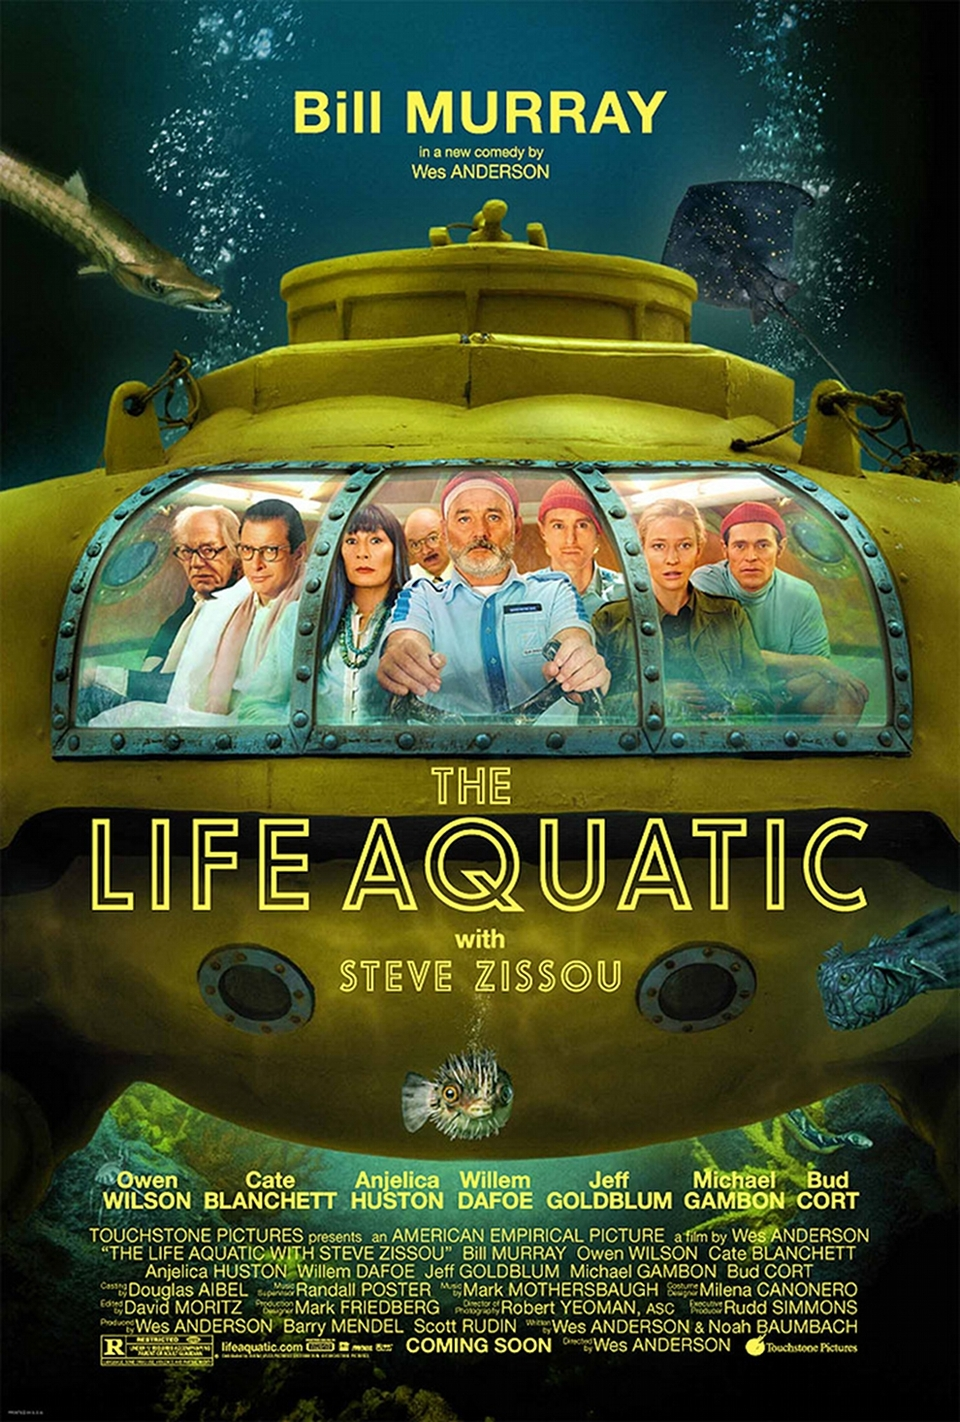 001-life-aquatic-estados-unidos.jpg